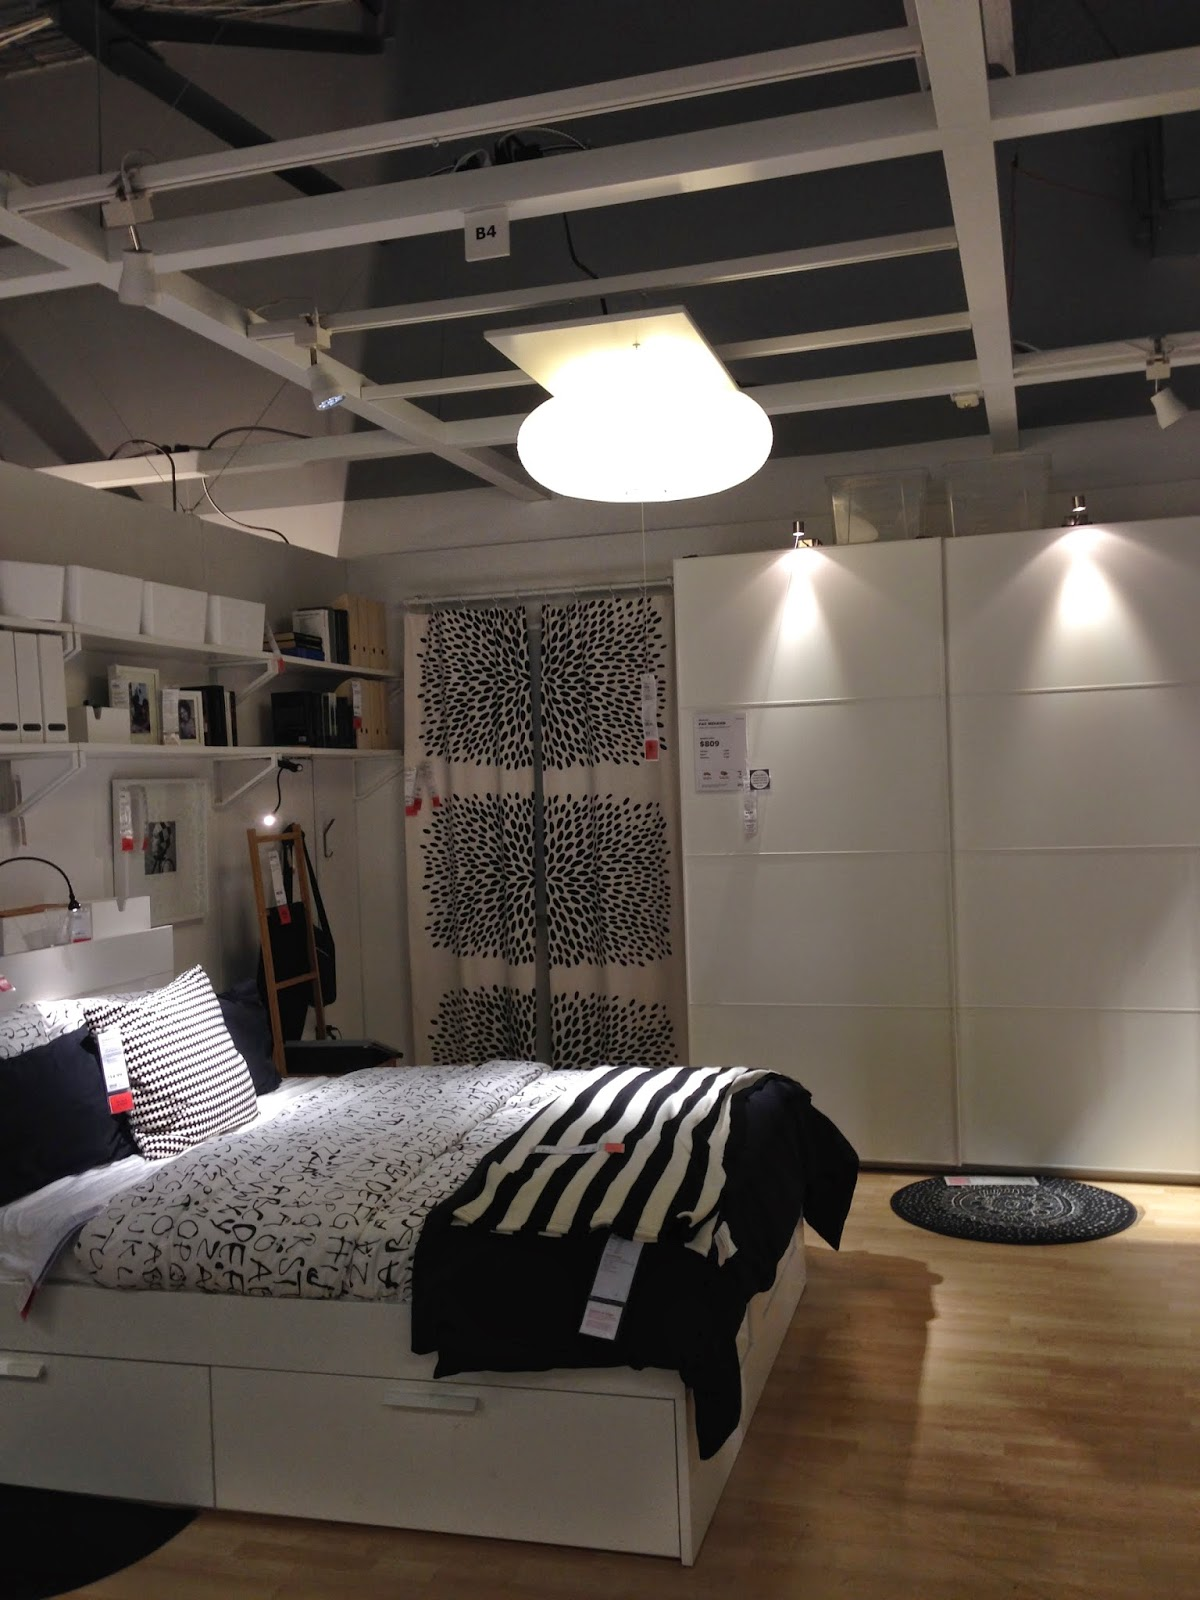 ... Any Space For That Matter!) Then The Lighting Is Too Harsh. The Second:  Every Room Benefits From Different Layers Of Lighting. Ikea Does This SO  Well.